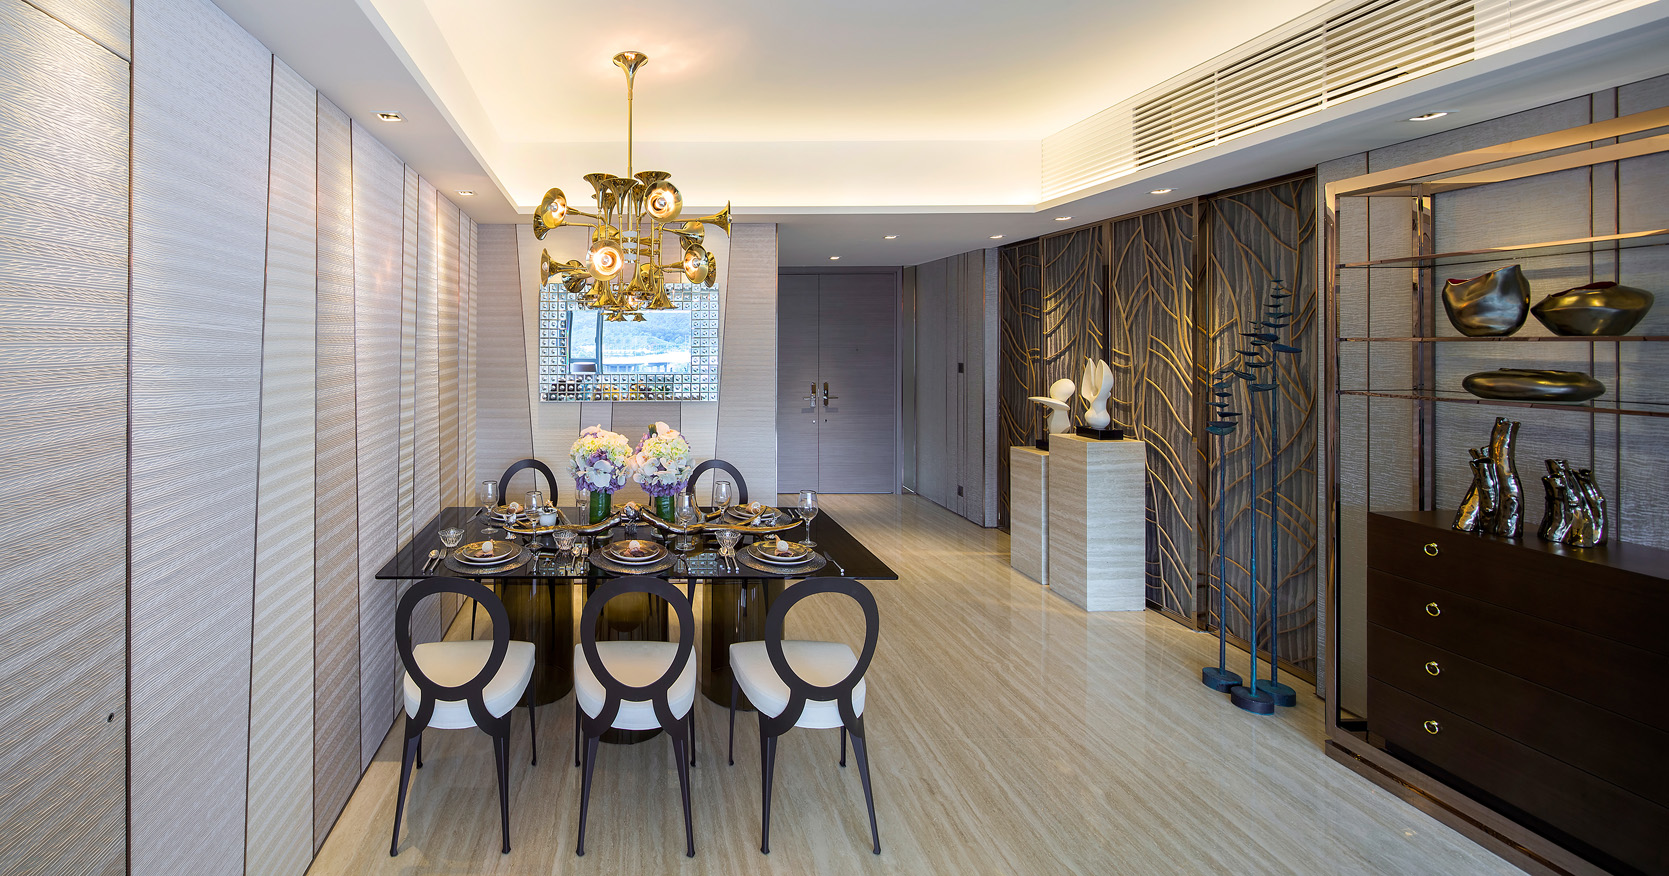 Dining room lighting ideas for a luxury interior luxury Hotel Thoumieux: a celebration of luxury and design Dining room lighting ideas Delightfull Botti luxury Hotel Thoumieux: a celebration of luxury and design Dining room lighting ideas Delightfull Botti